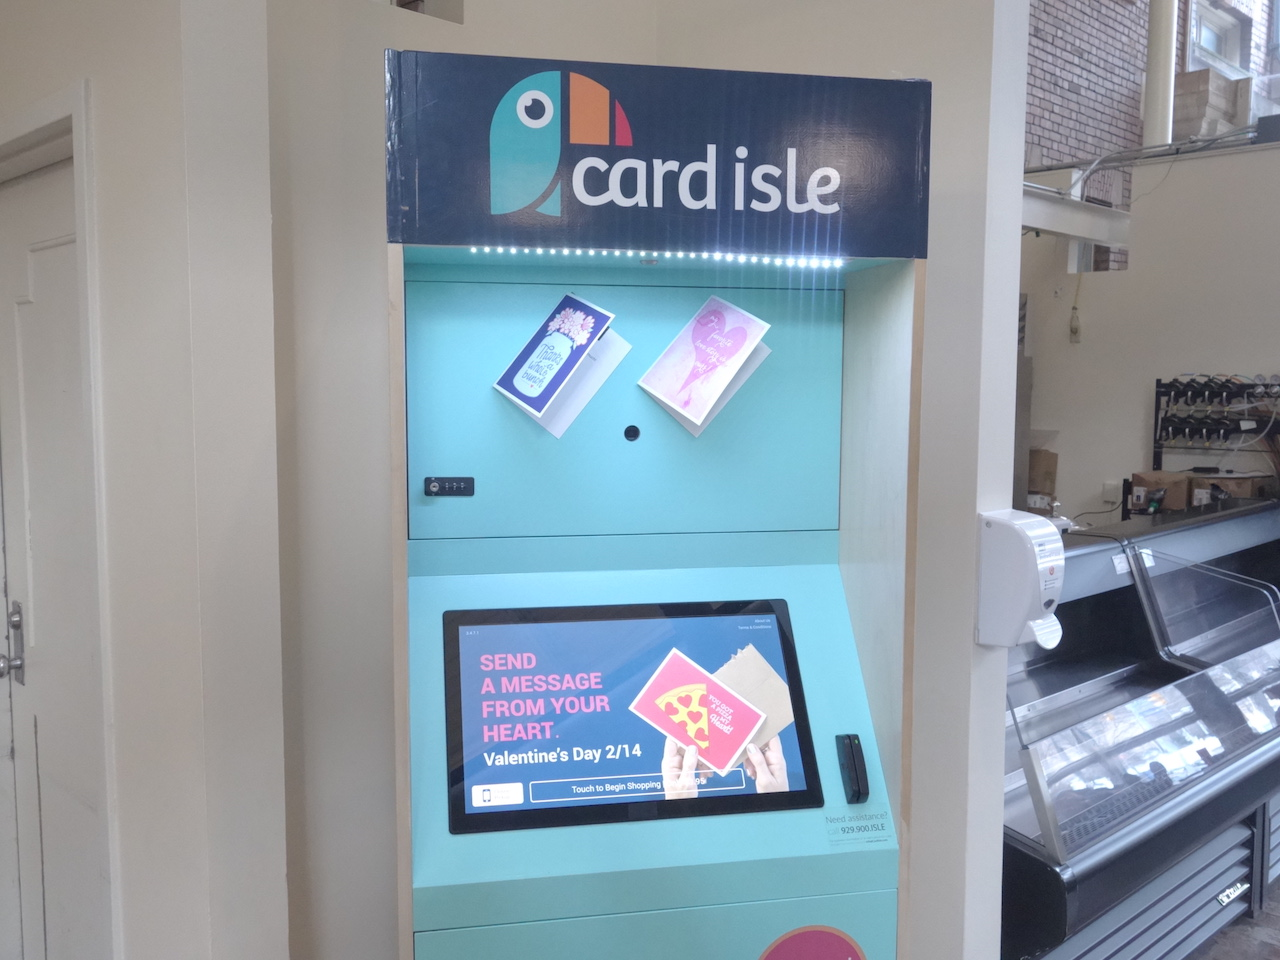 Kiosk For Personalized Greeting Cards Now In Thwing The Observer